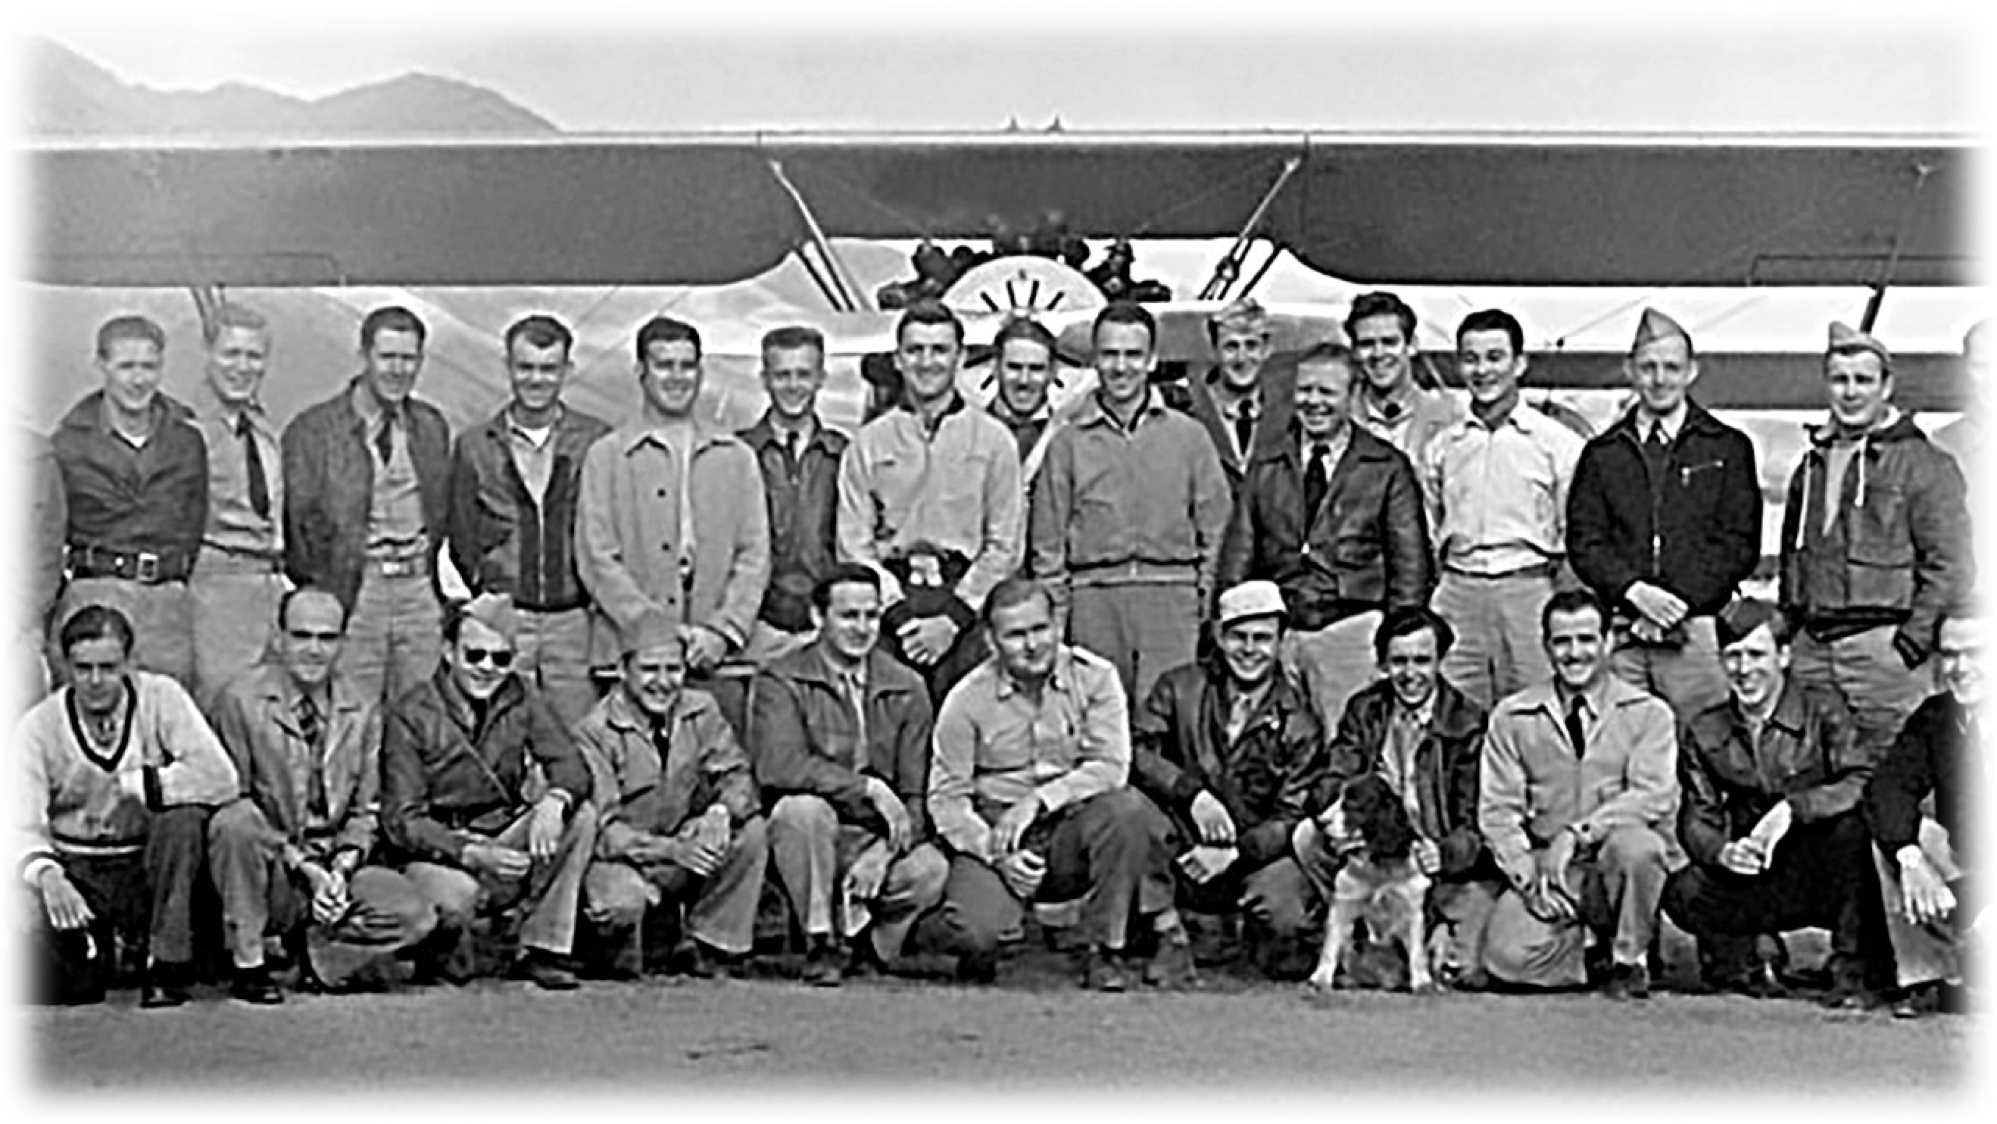 Ogden Airport History - Rich and Abundant just like the city